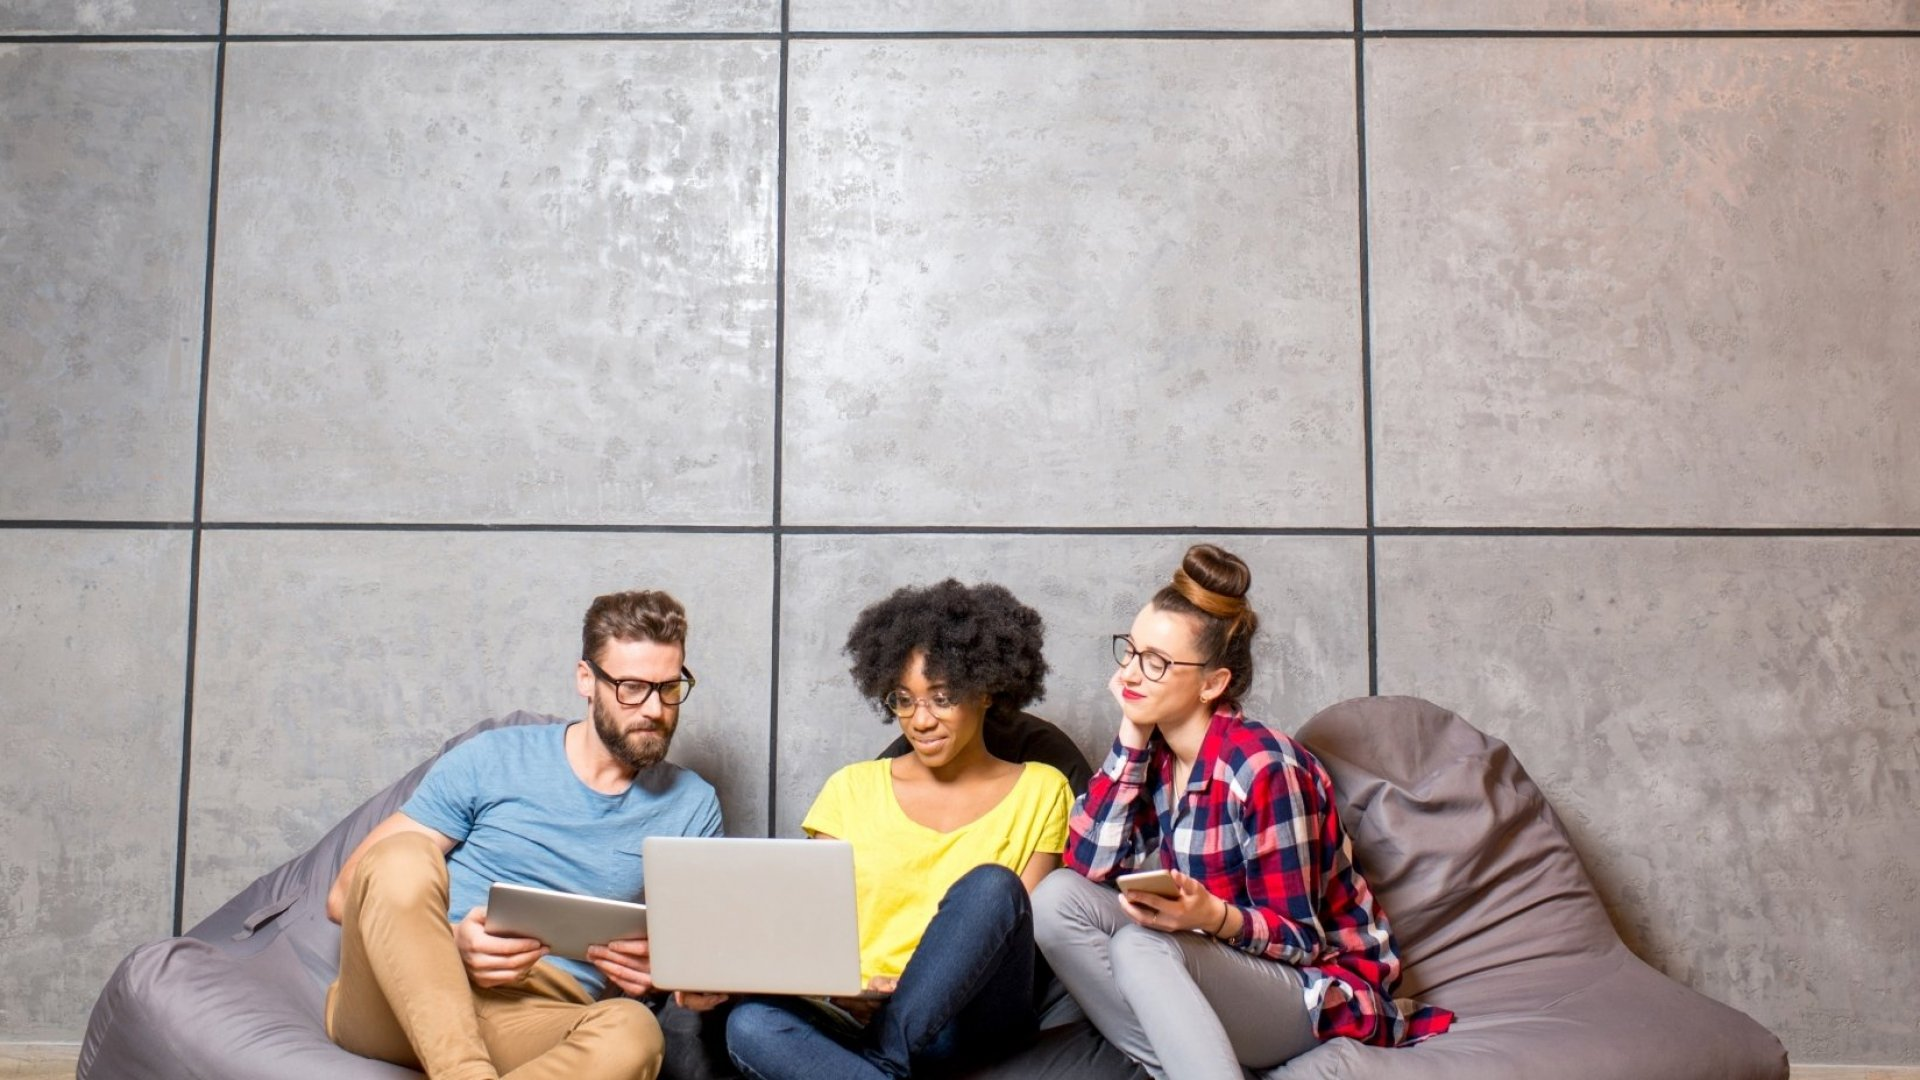 5 Important Things You Should See in Your Co-Workers Every Day